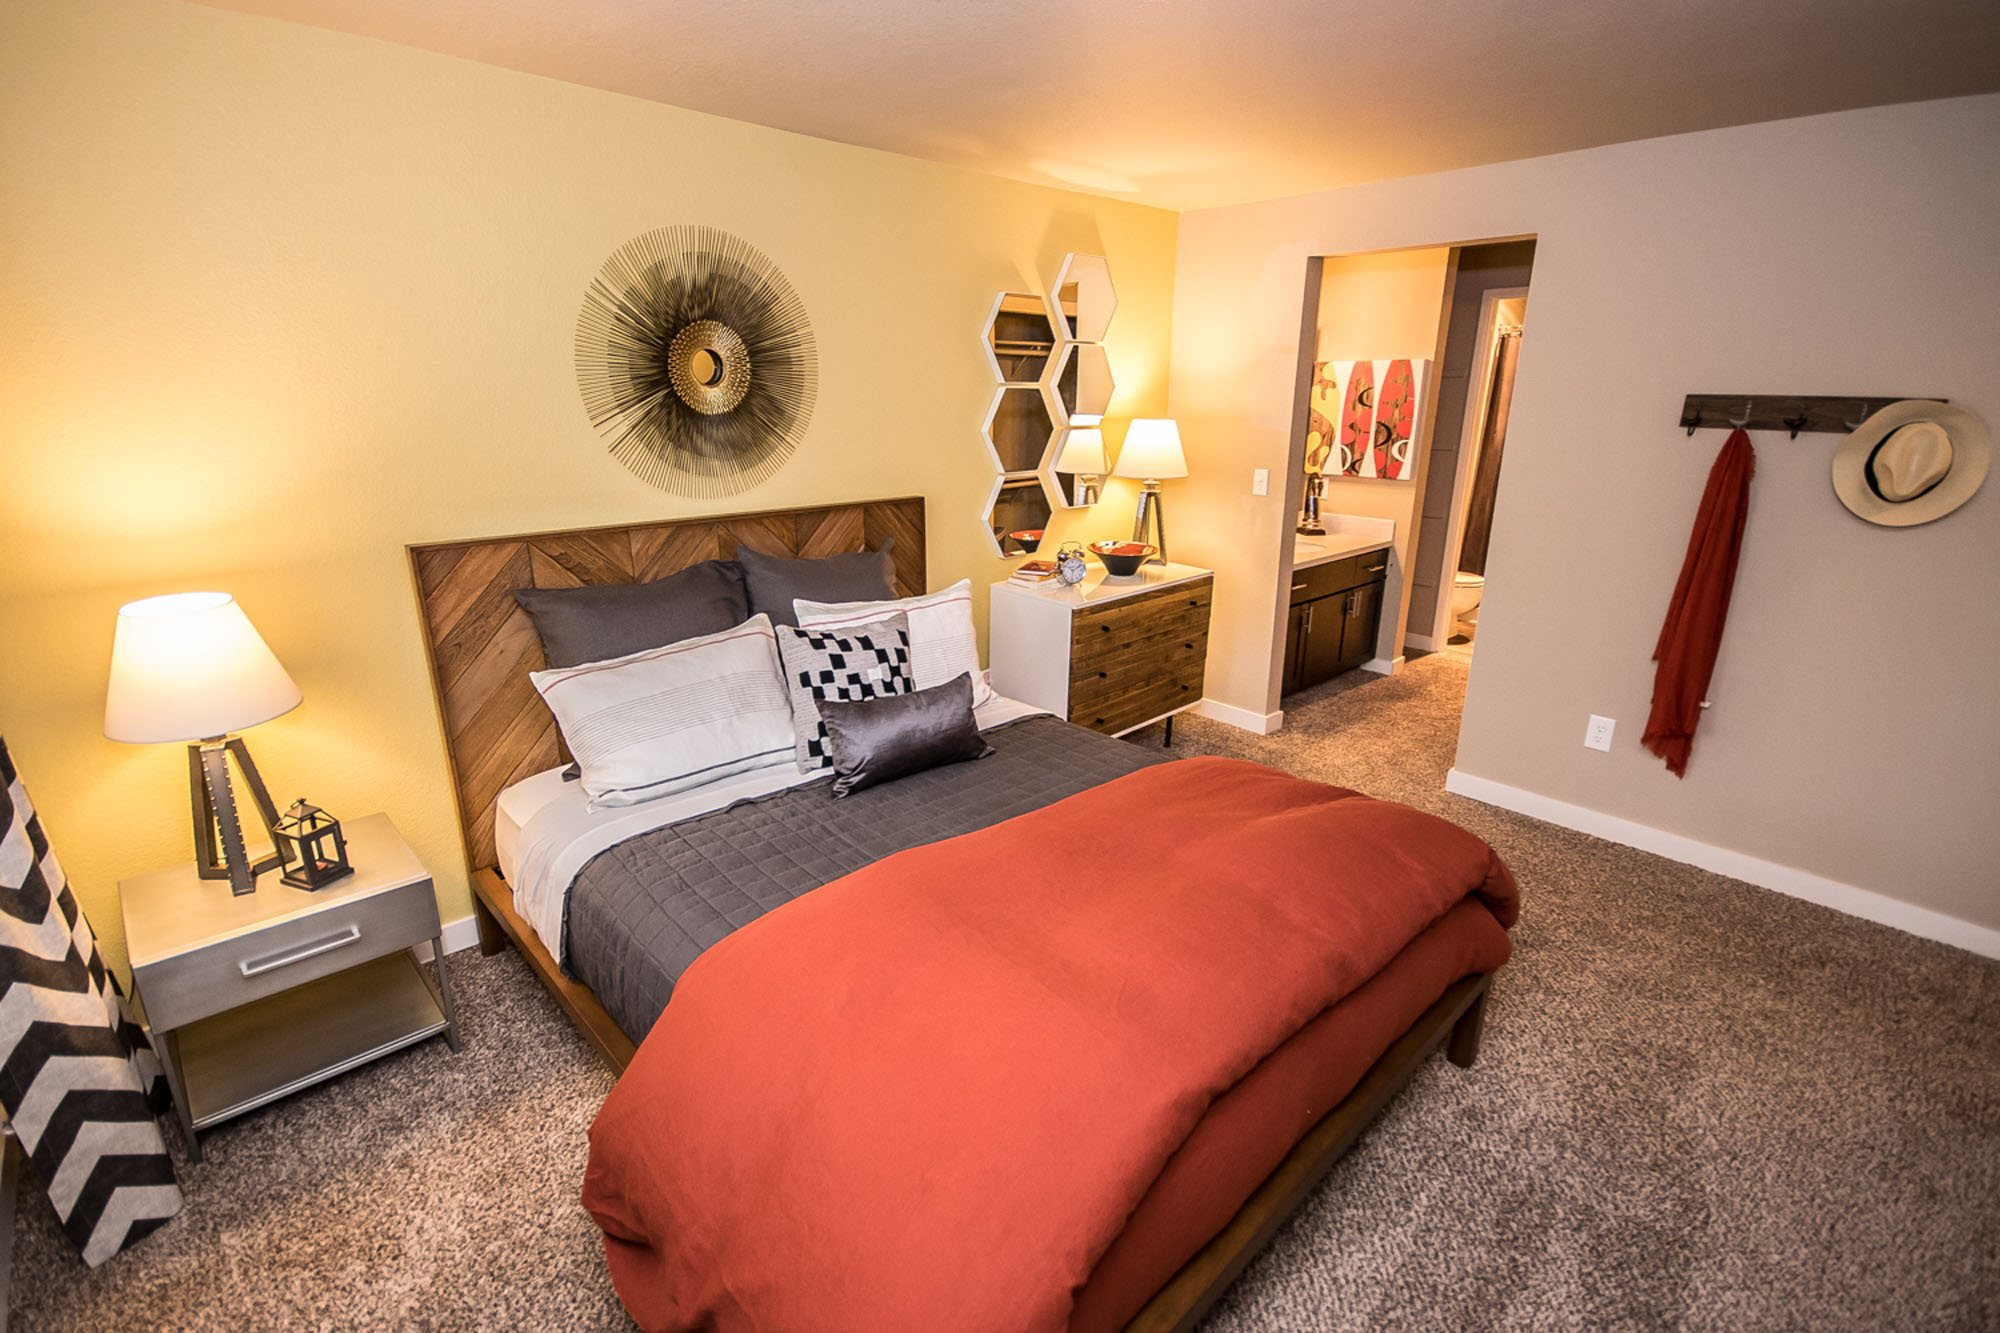 Apartments Tacoma WA-The Fairways Apartments Master Bedroom with Large Closet, Cozy Carpet, and Private Bathroom